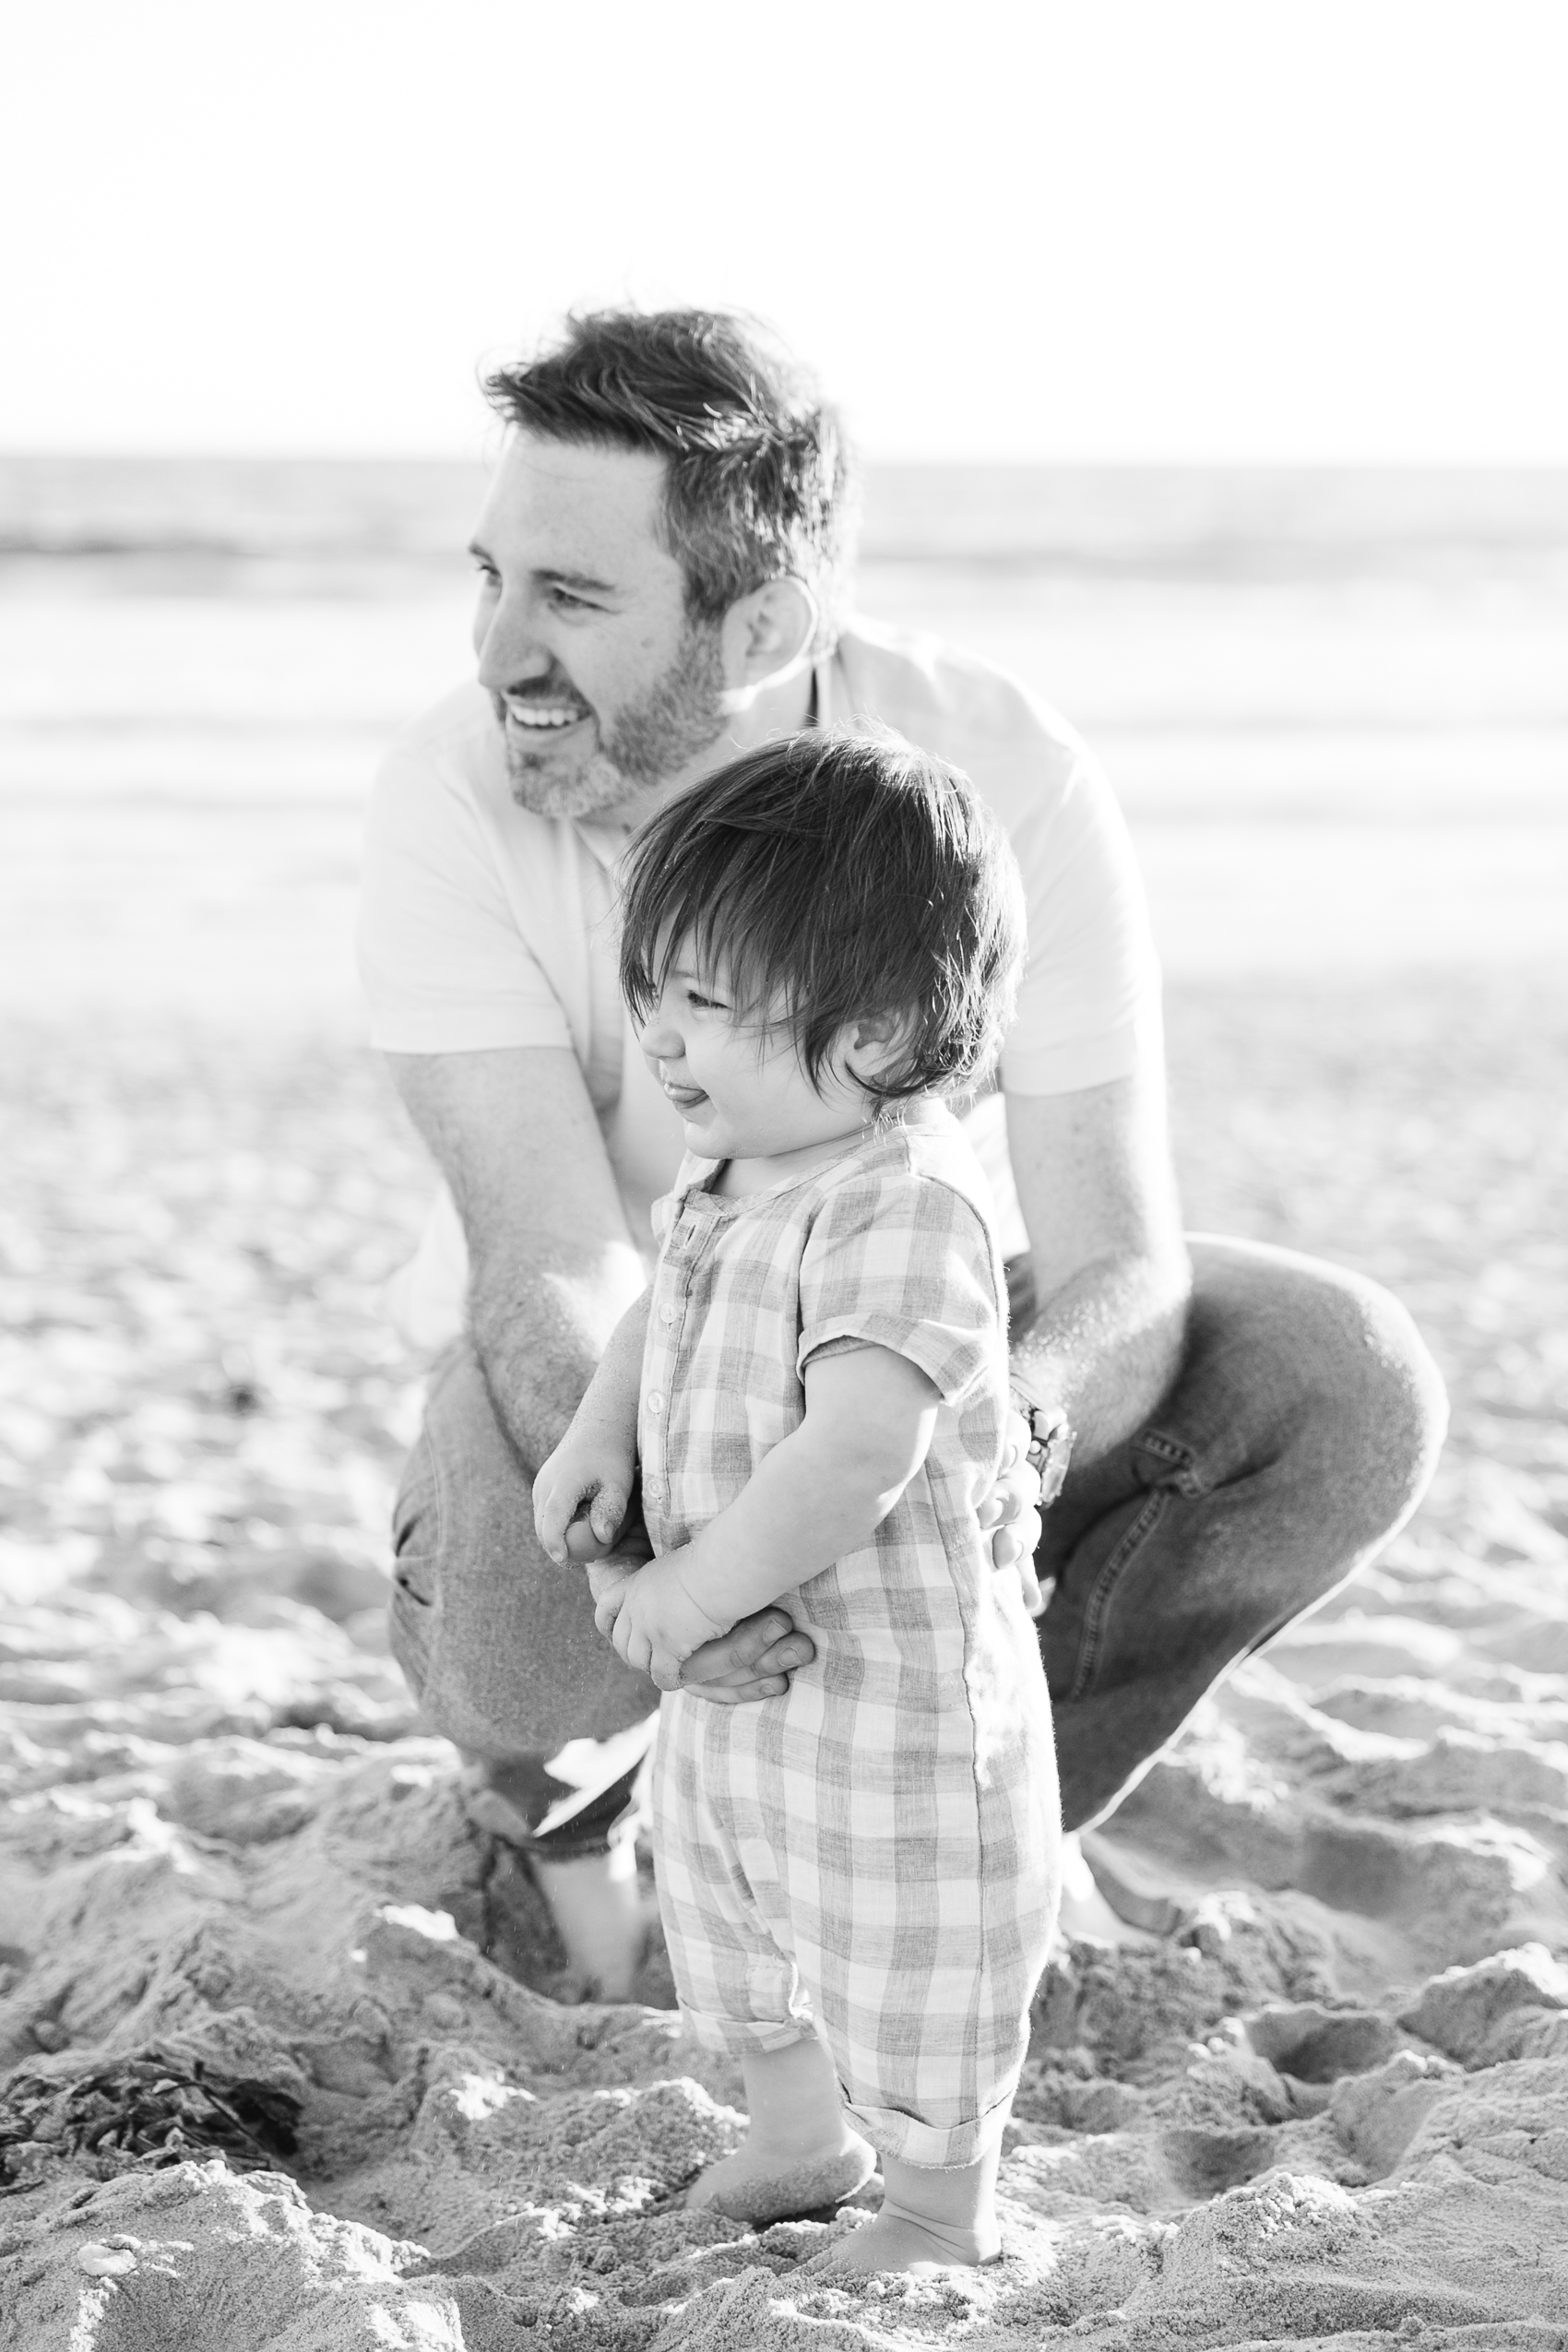 Los_Angeles_Family_Photographer_Maternity_Photos_Baby_Pregnancy_Venice_Beach_Golden_Hour-0862.jpg